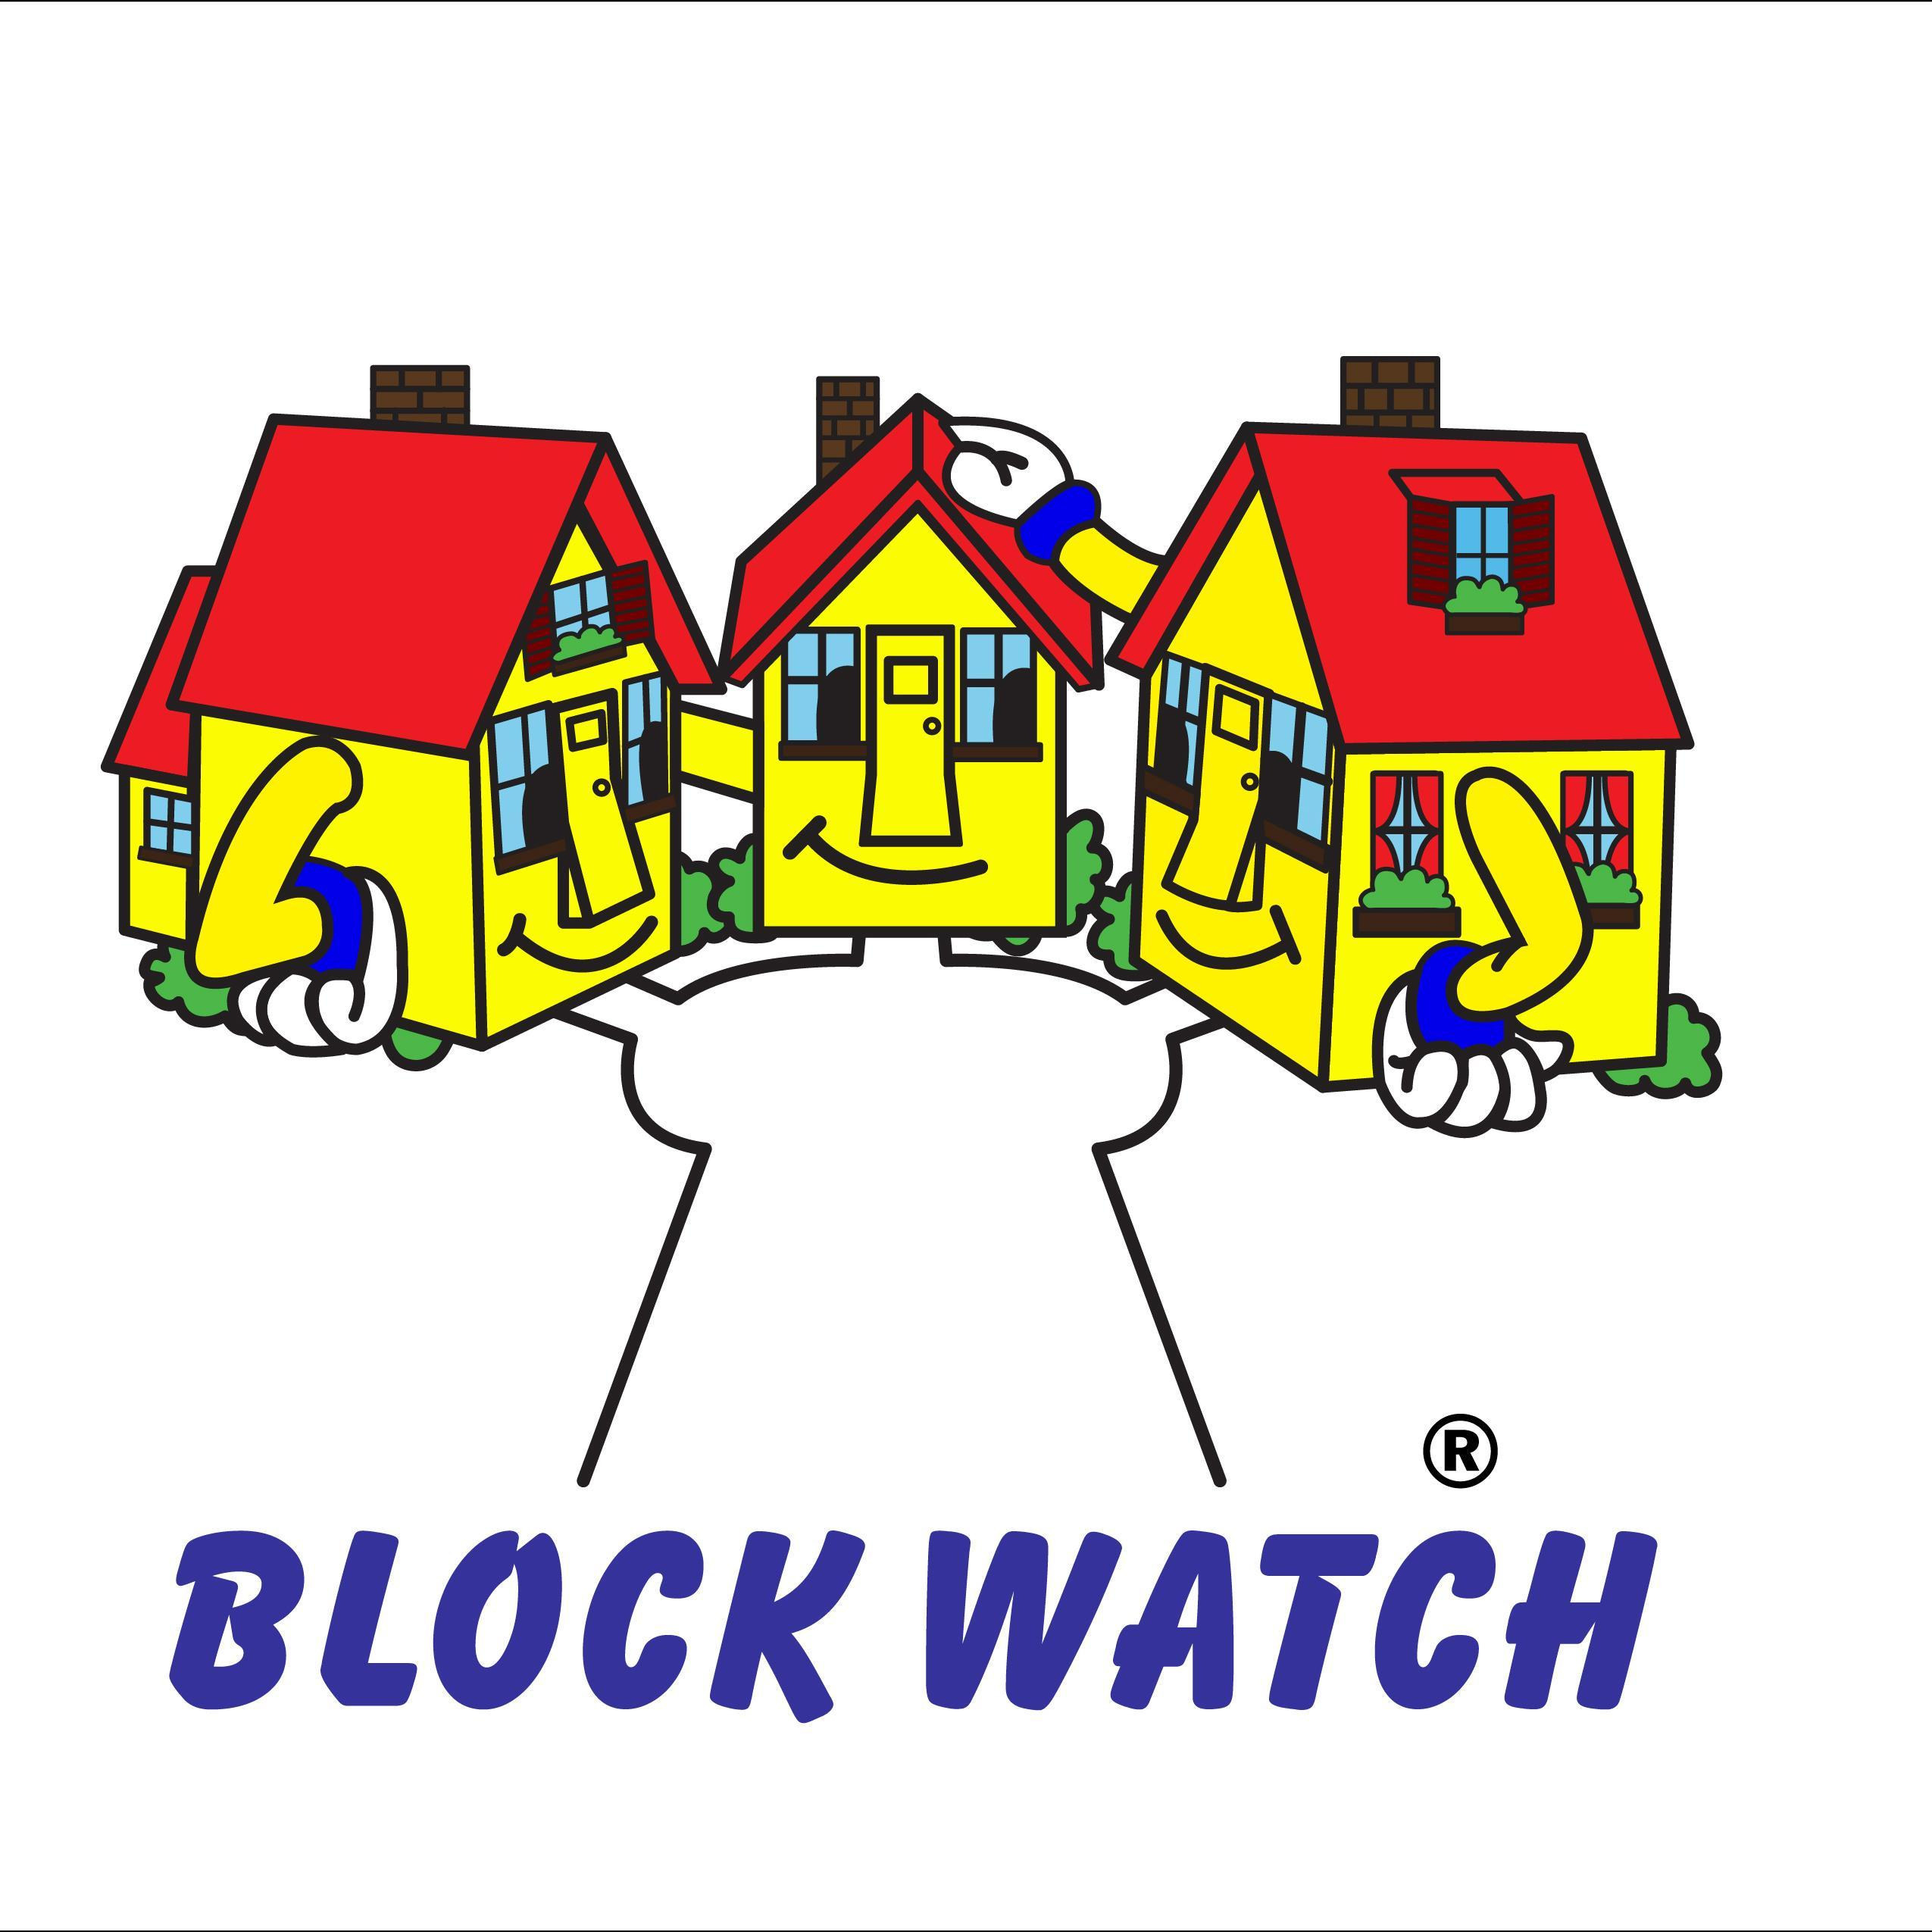 Blockwatch.com Logo